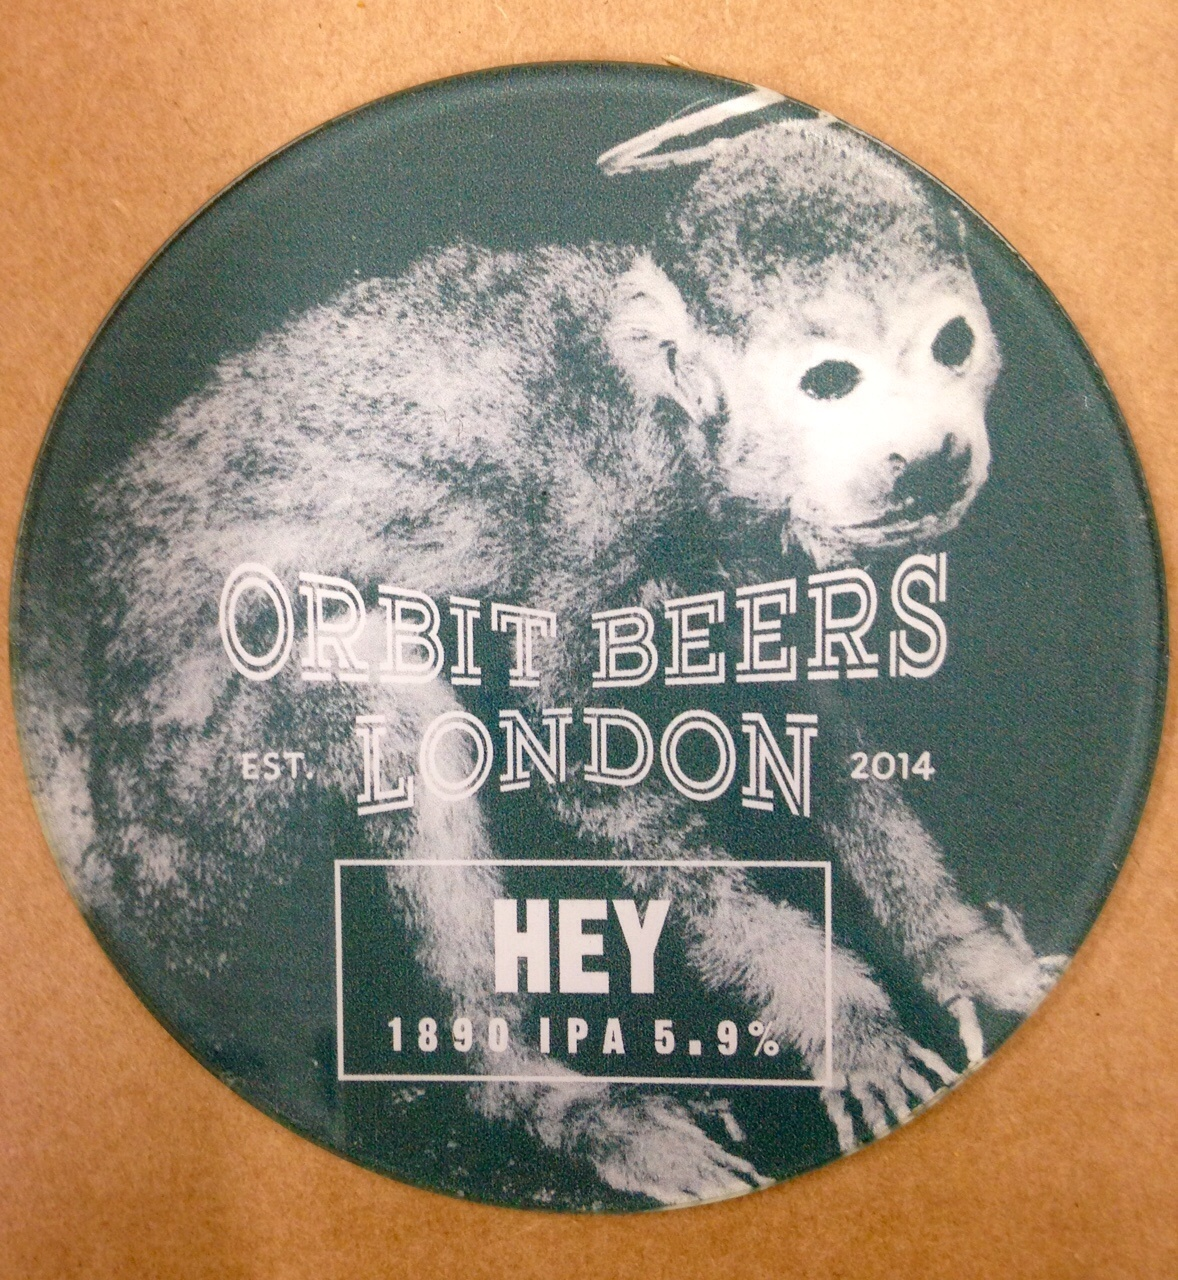 Promotional beer tap badge for exhibition launch event